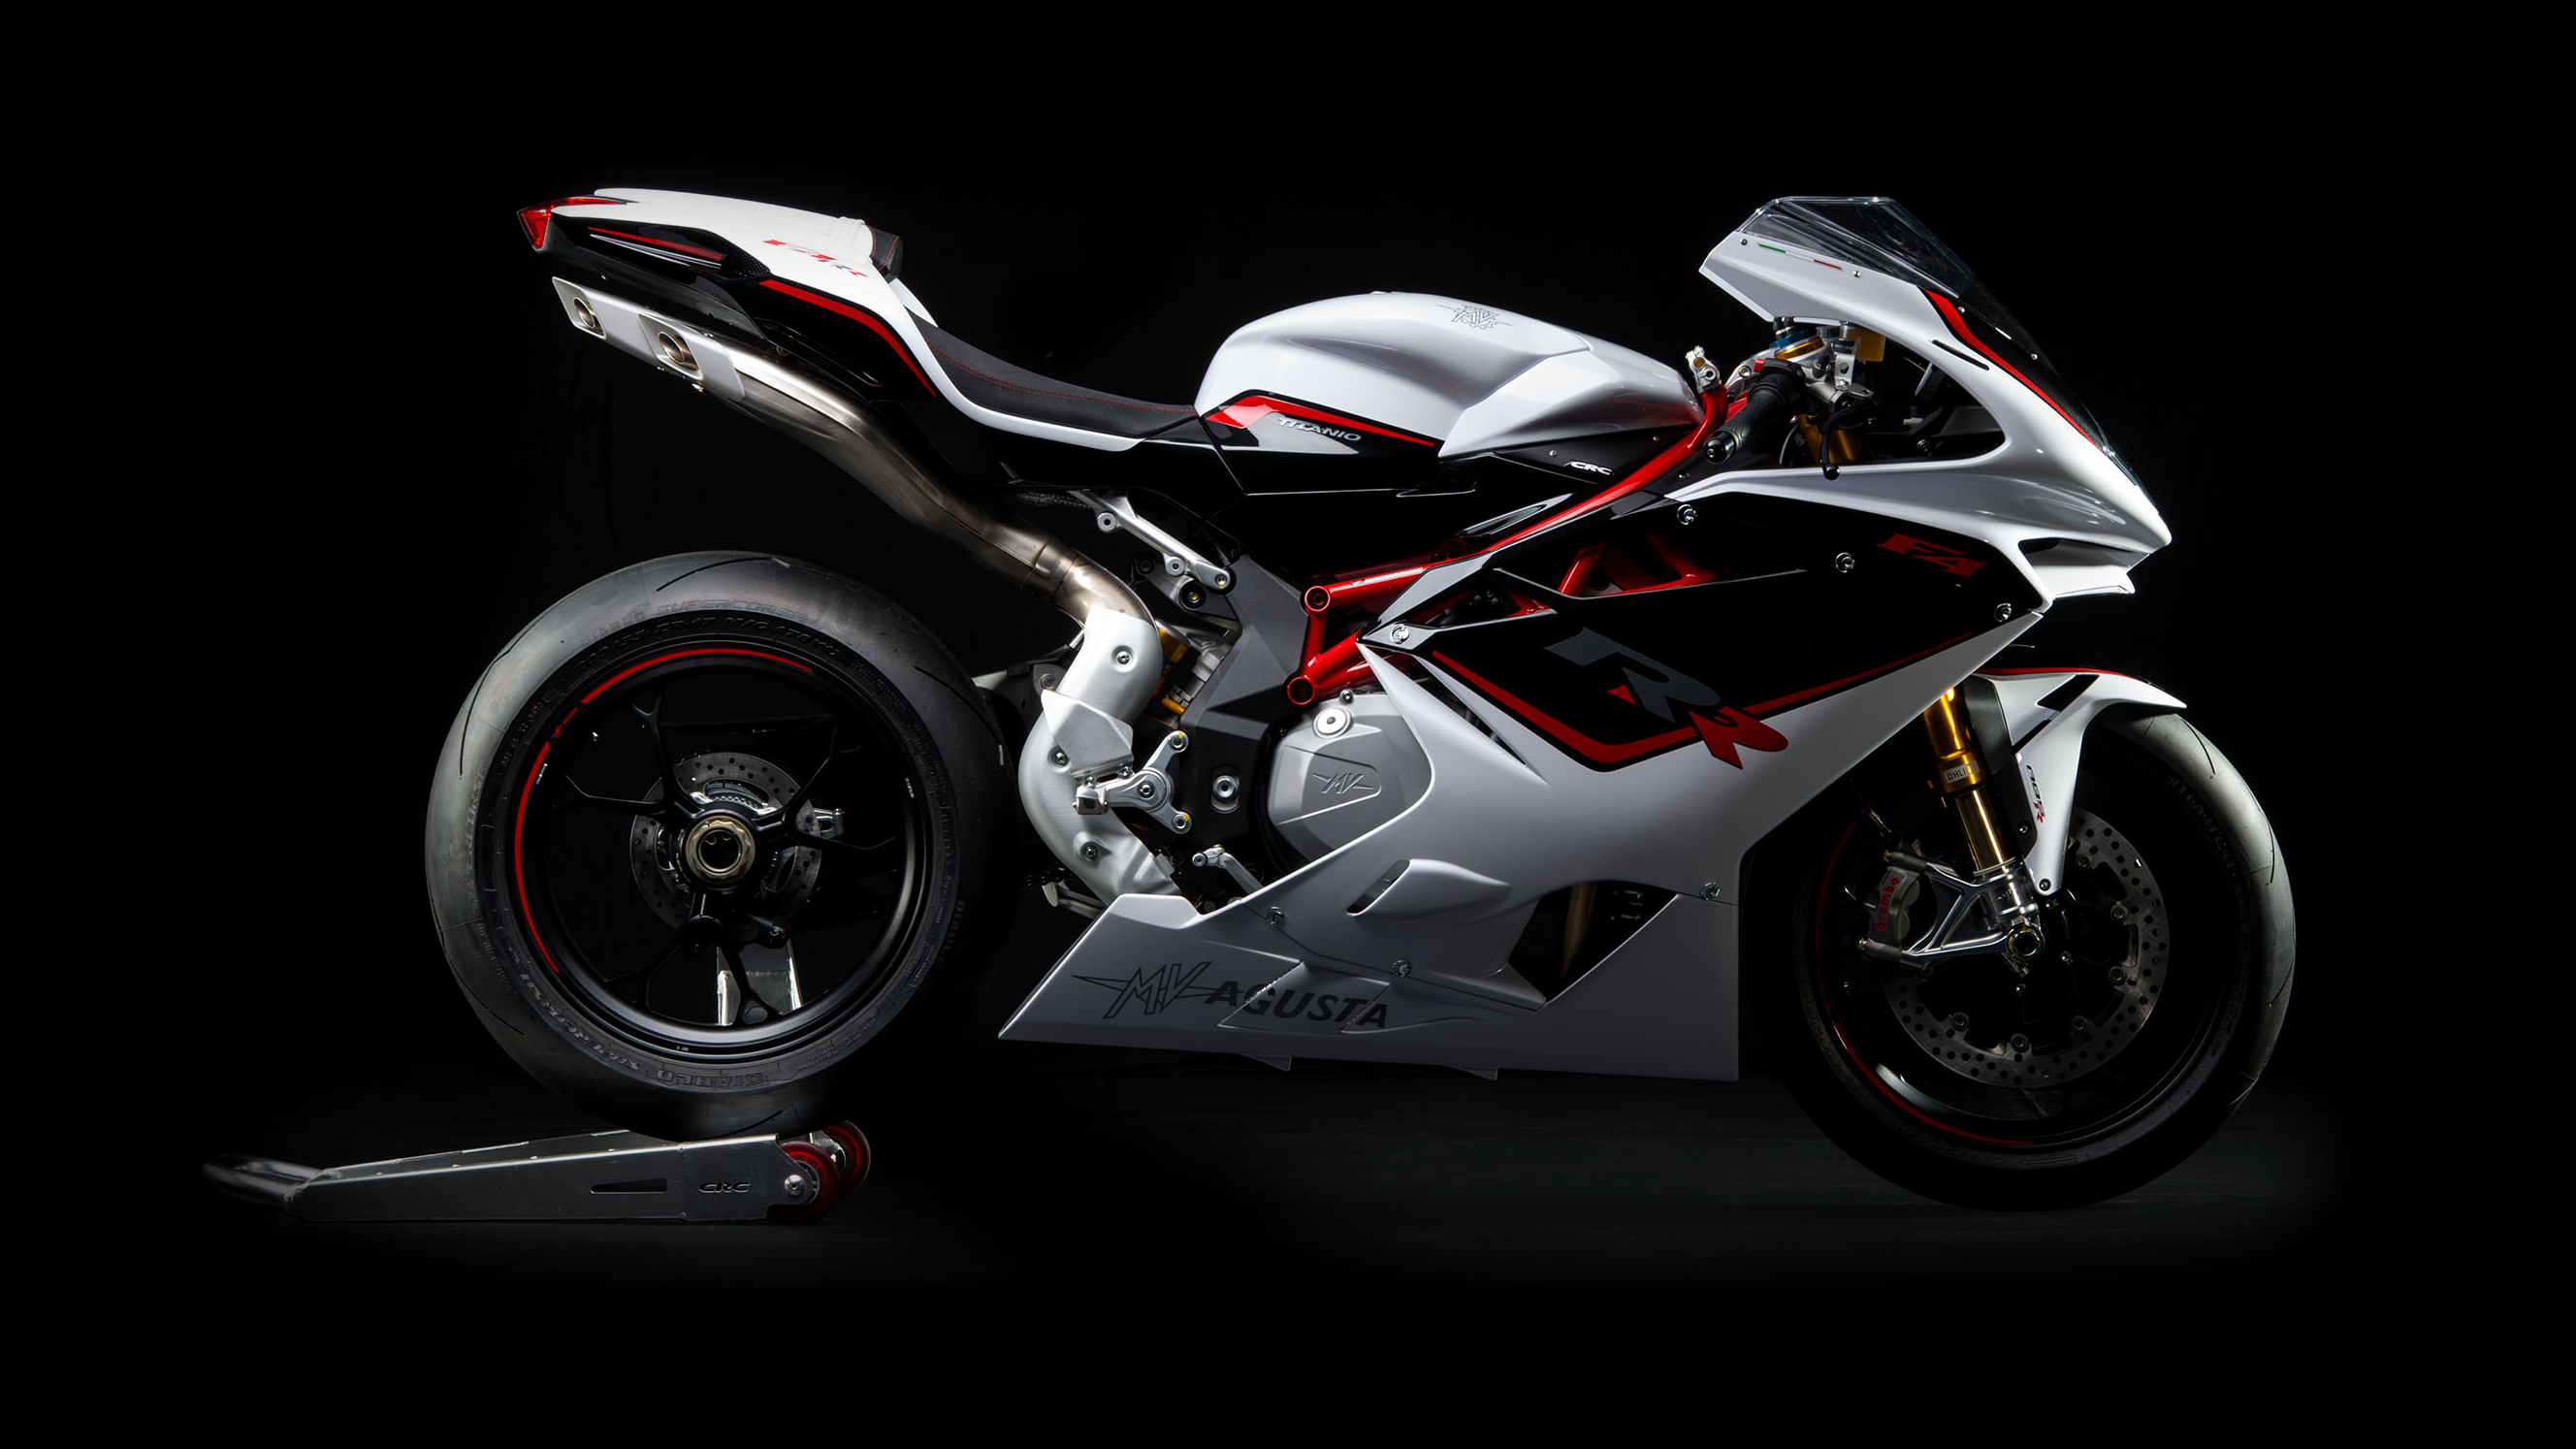 2016 2018 mv agusta f4 rr top speed. Black Bedroom Furniture Sets. Home Design Ideas